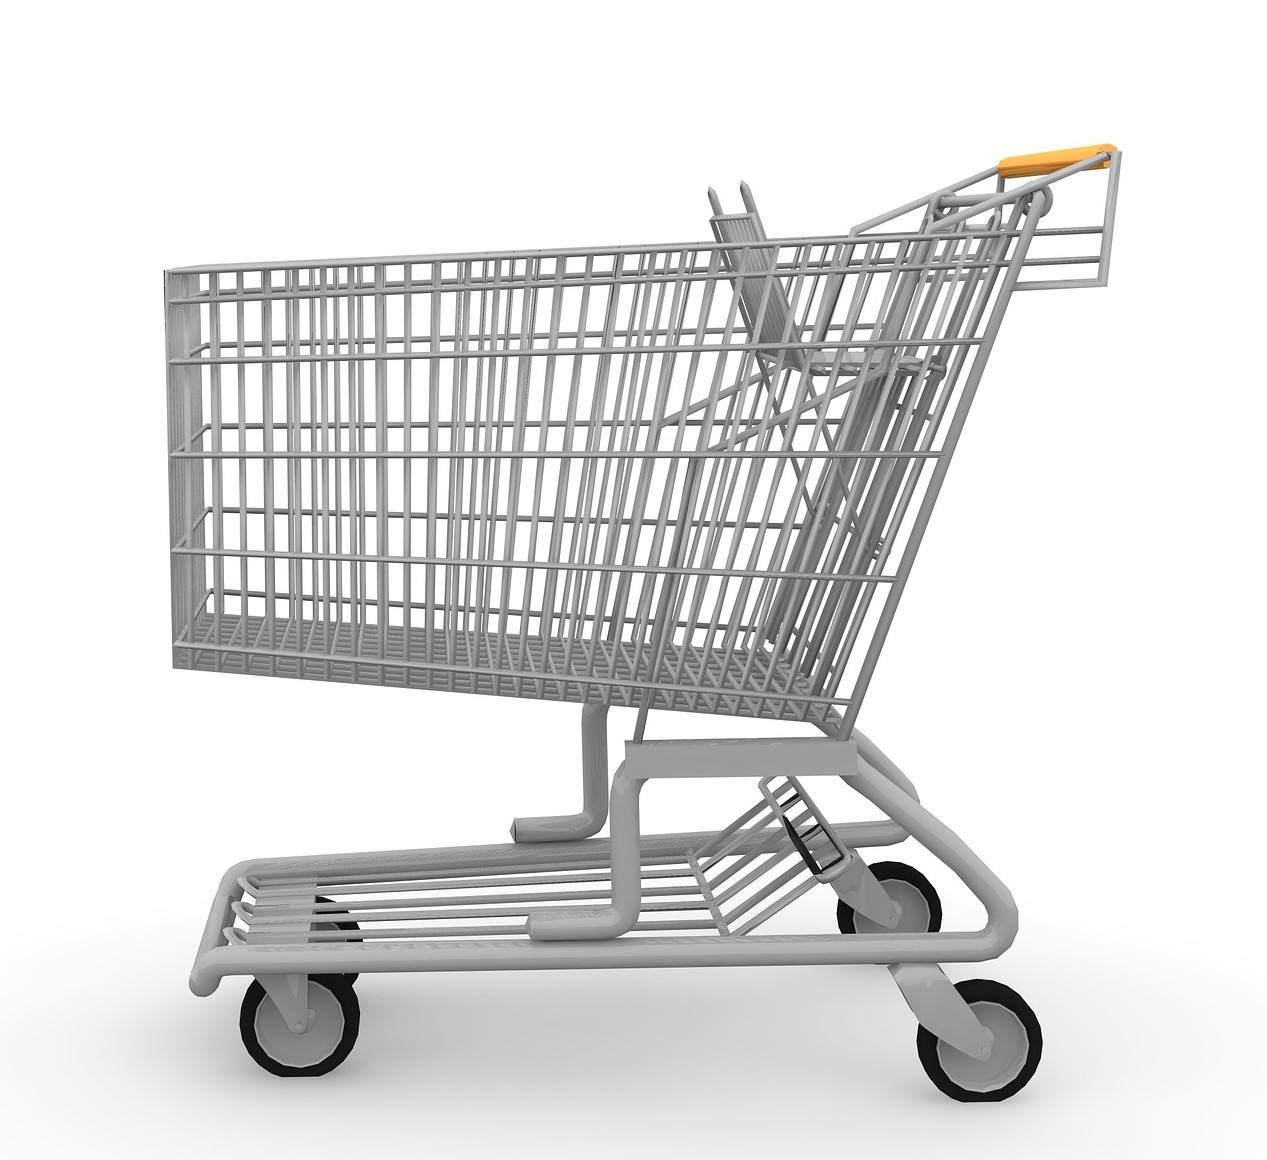 Shopping cart reference for social distancing